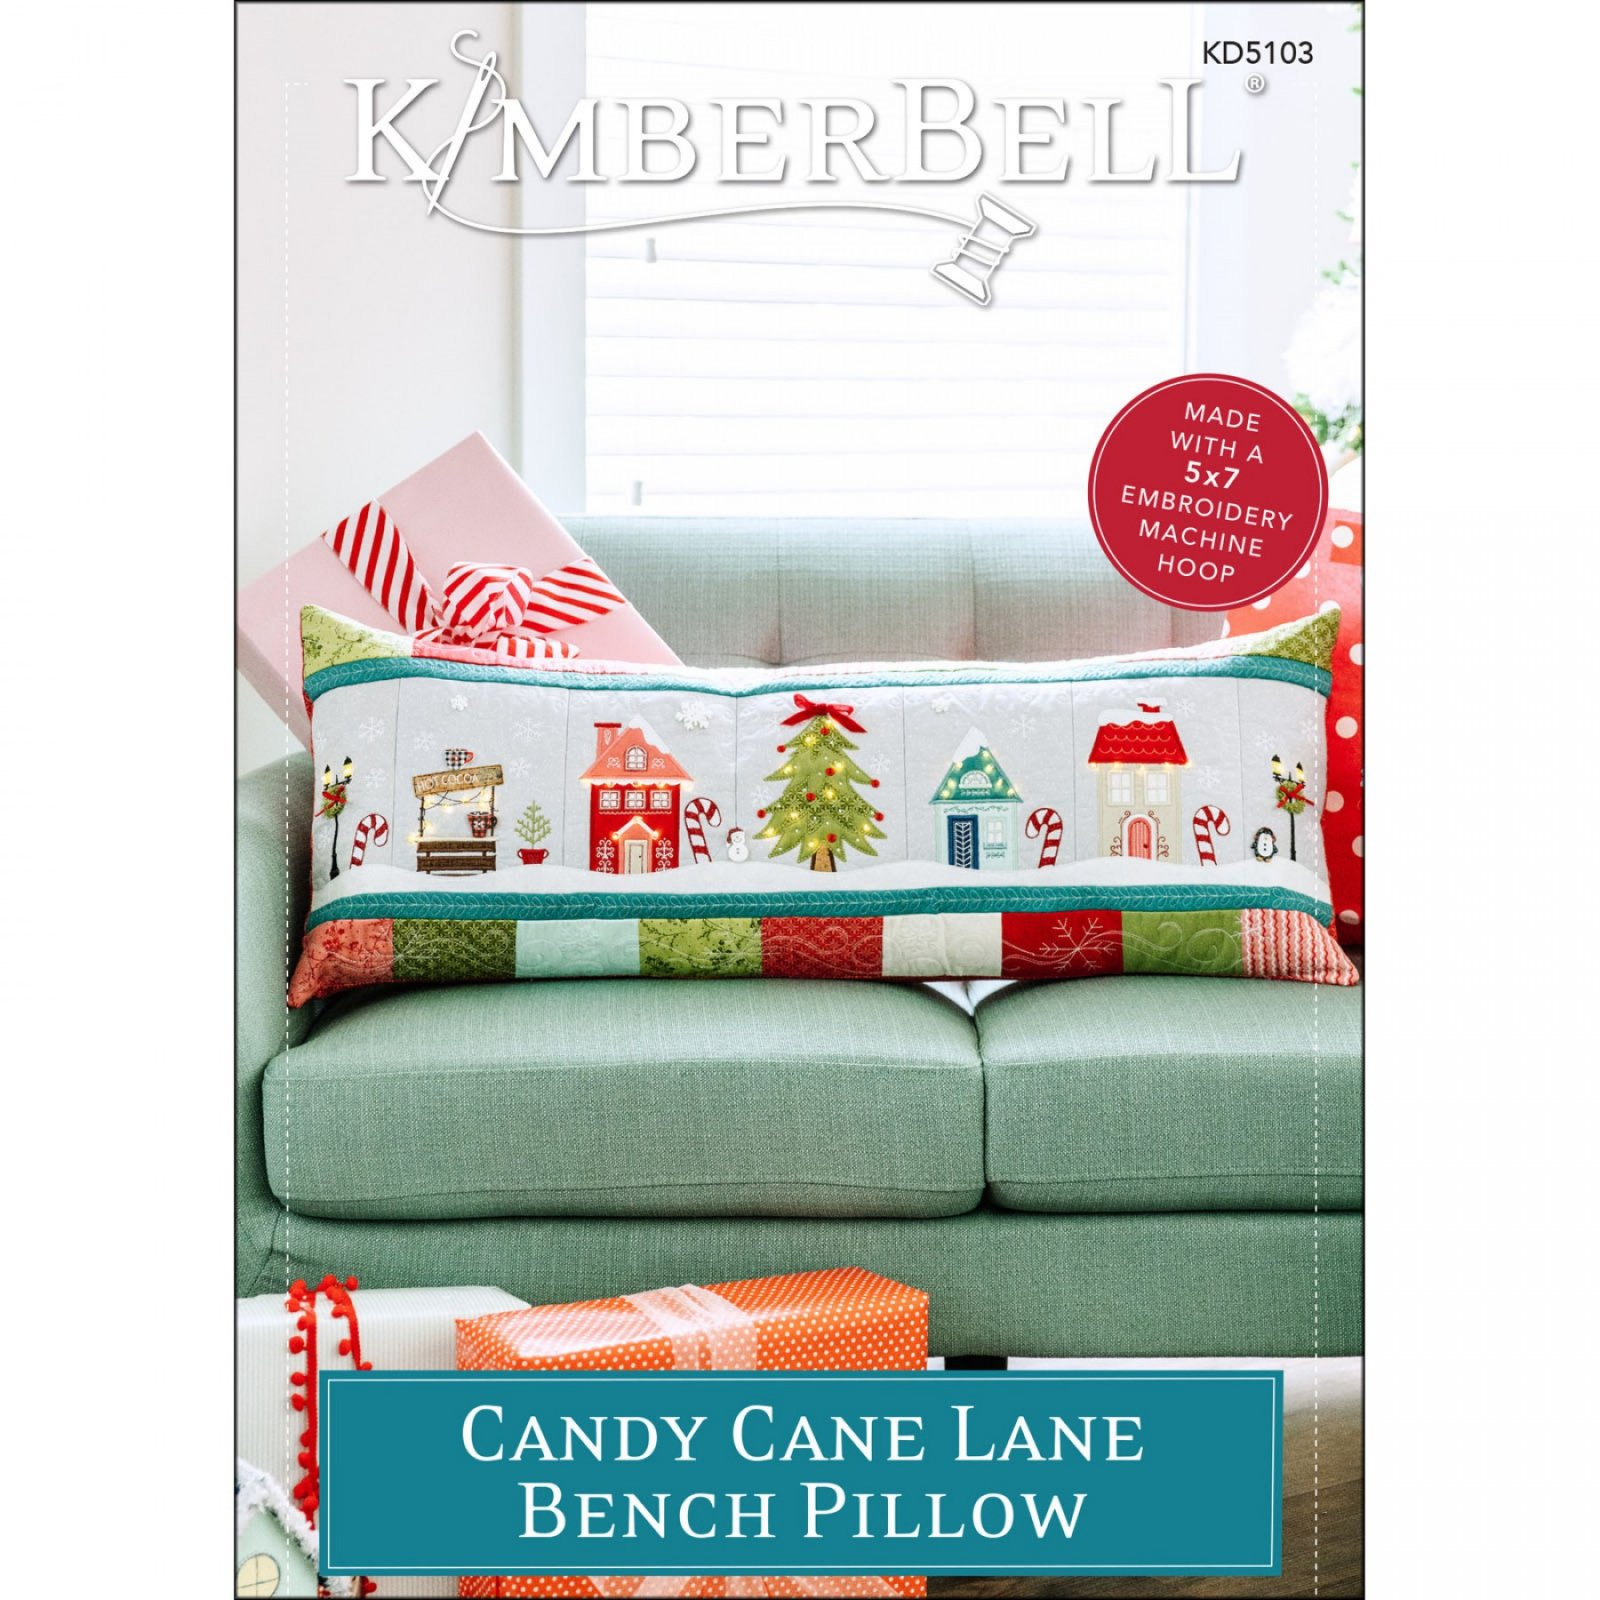 Candy Cane Lane Machine Embroidery CD by Kimberbell